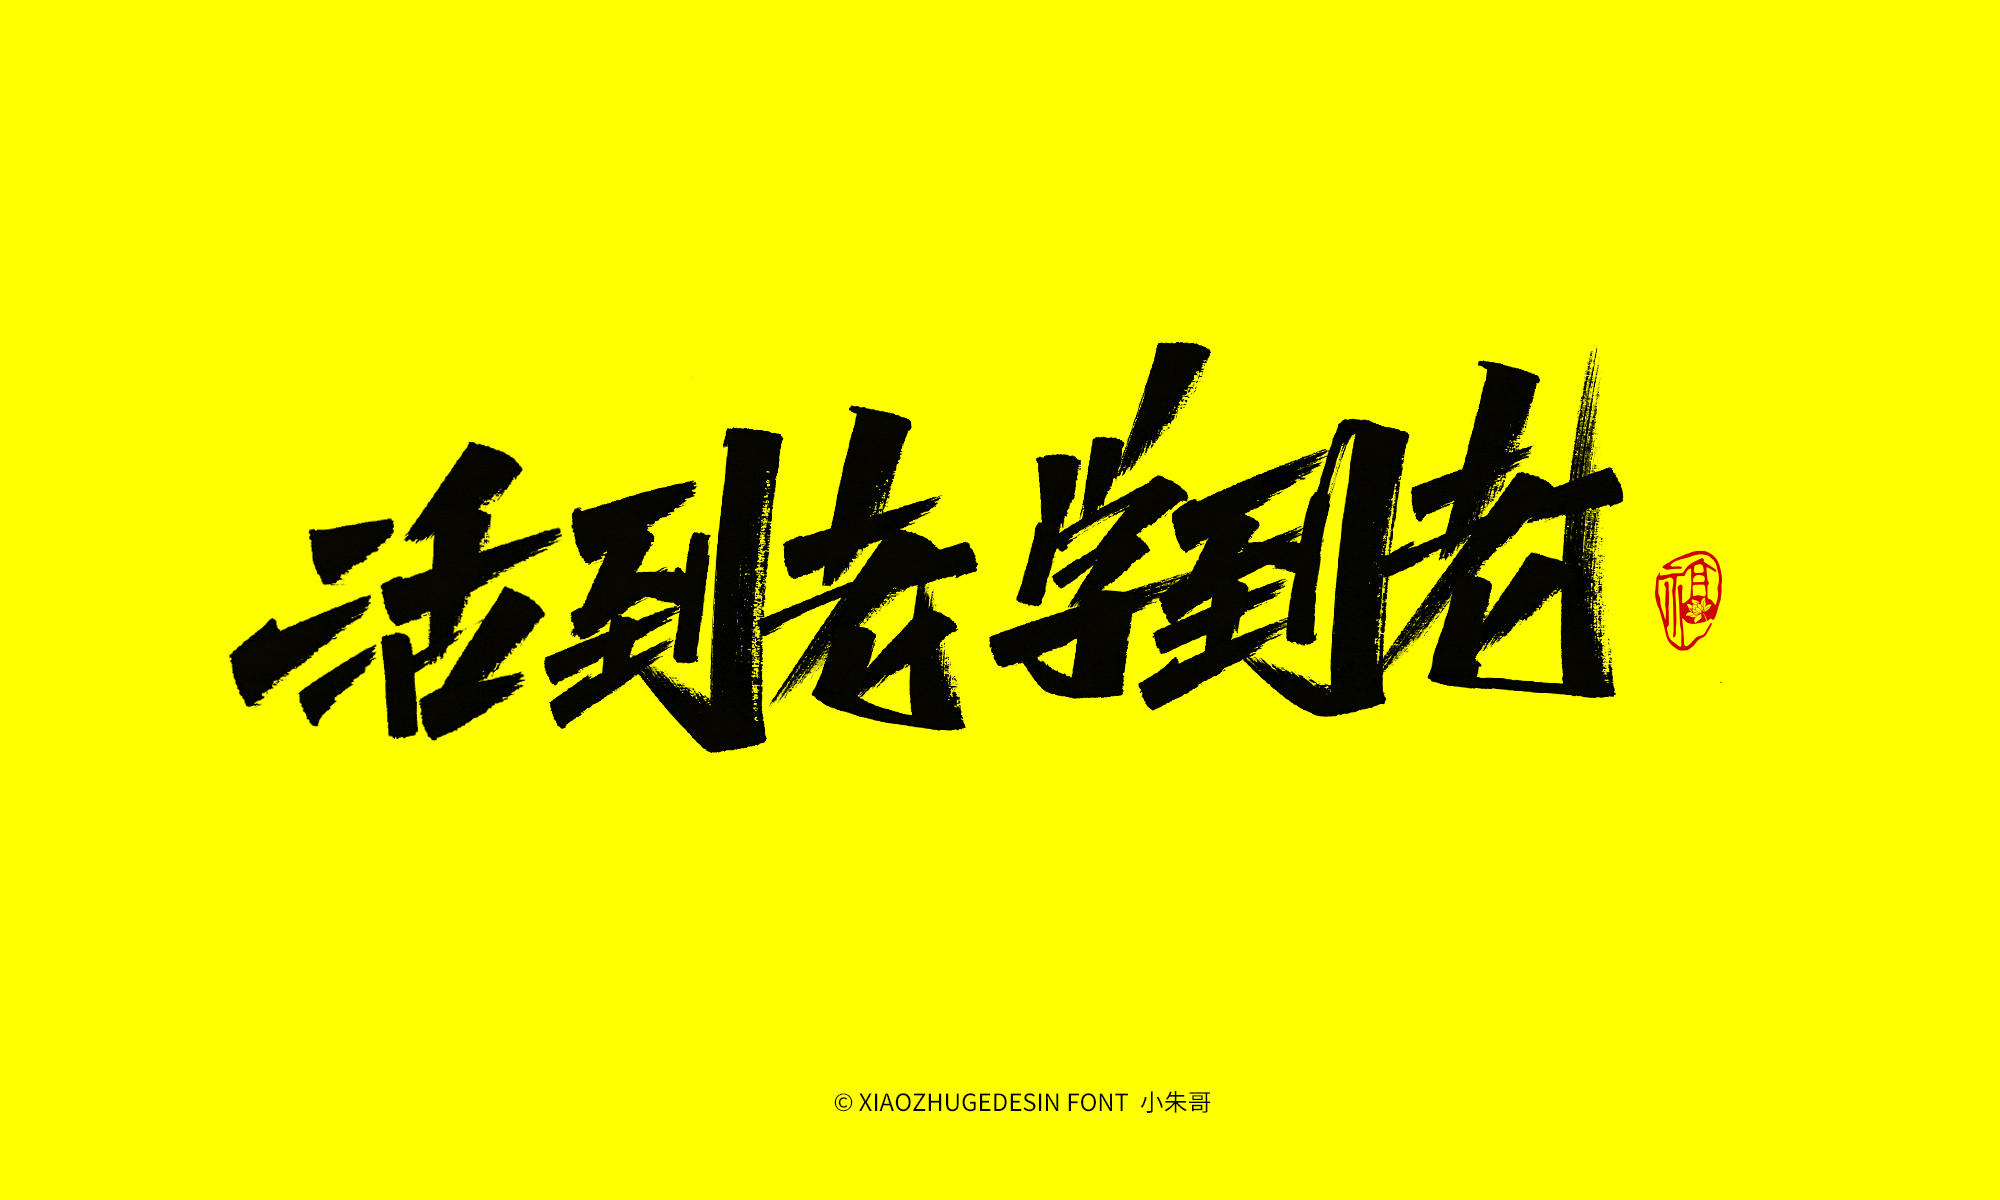 16P Collection of the latest Chinese font design schemes in 2021 #.334